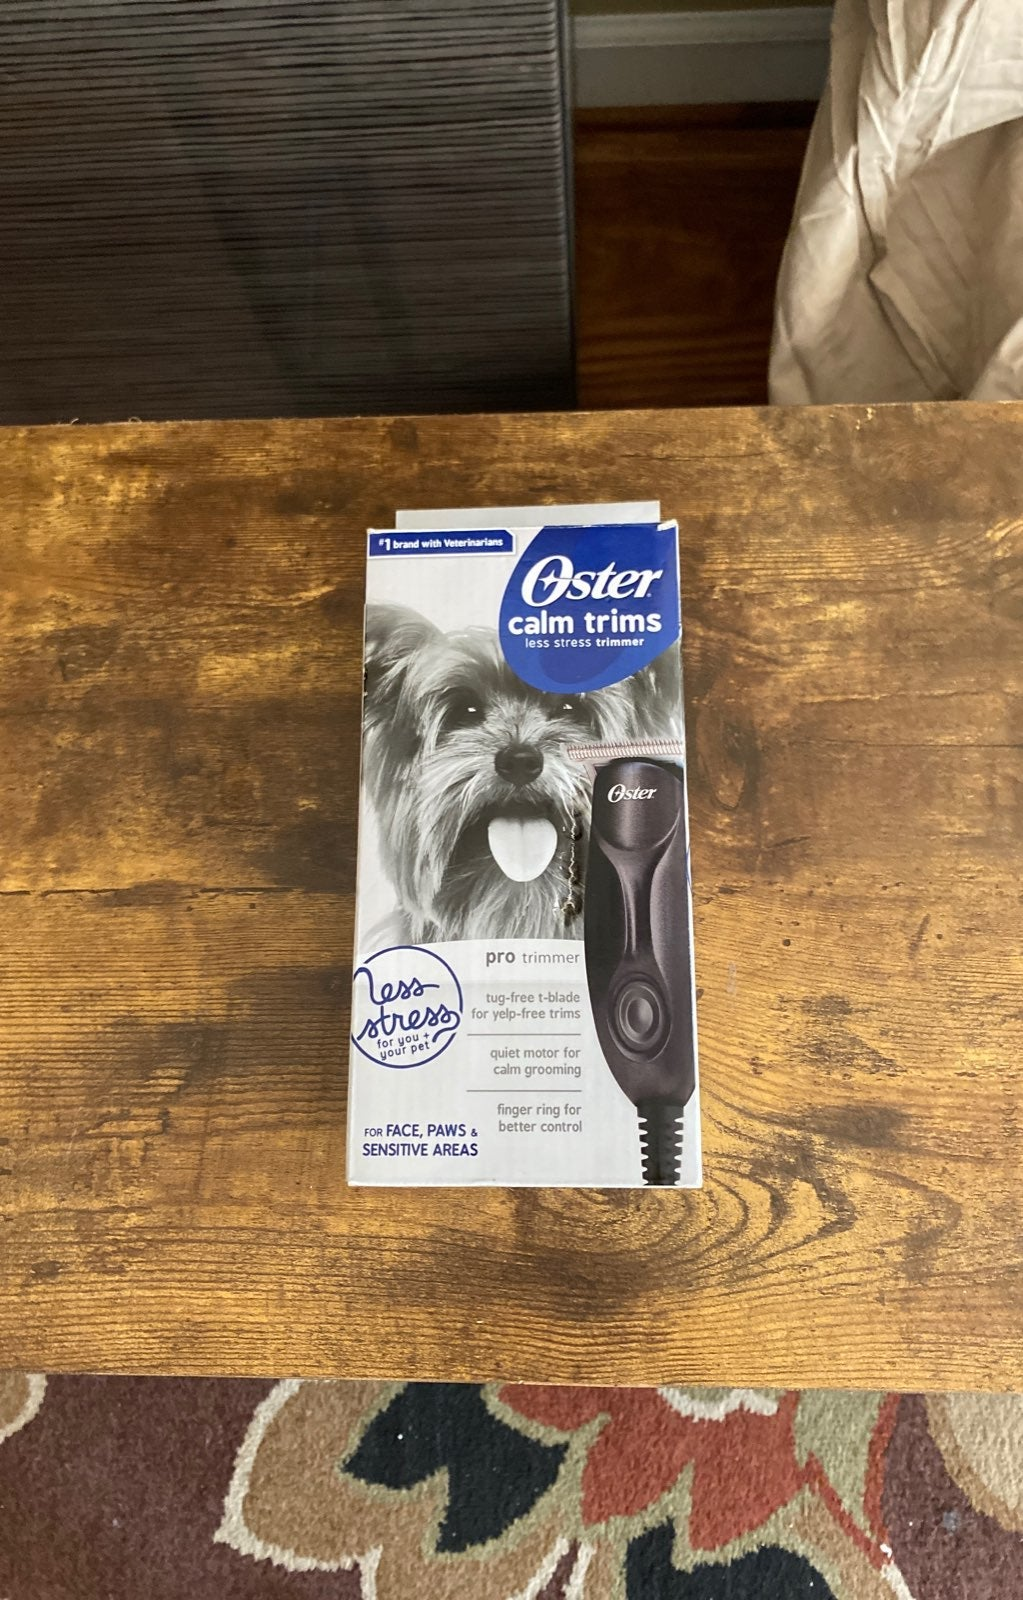 Oster pro trimmer for dogs